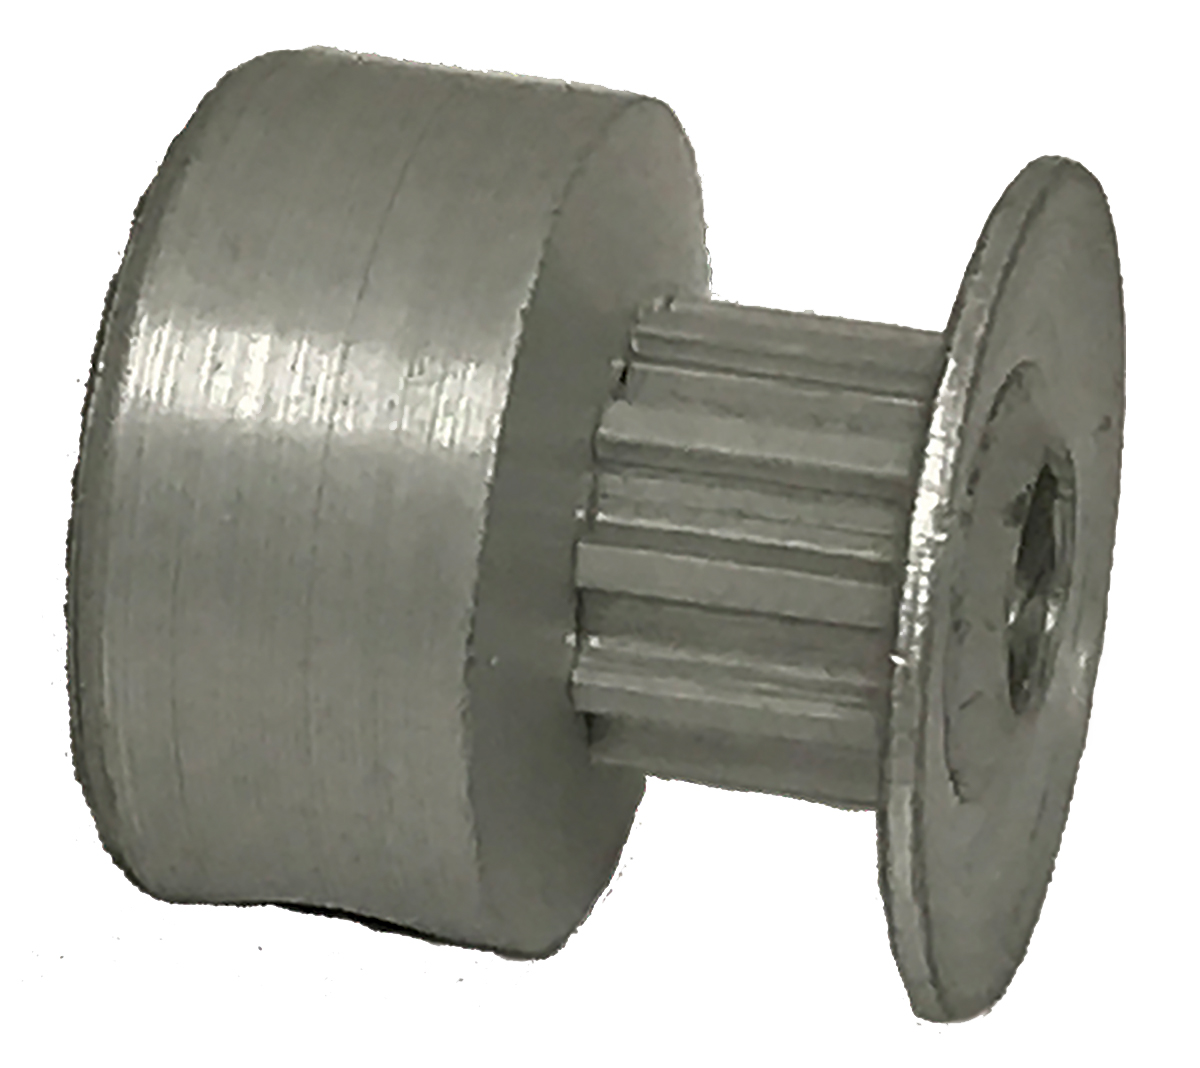 10MP012M6CA3 - Aluminum Metric Pulleys